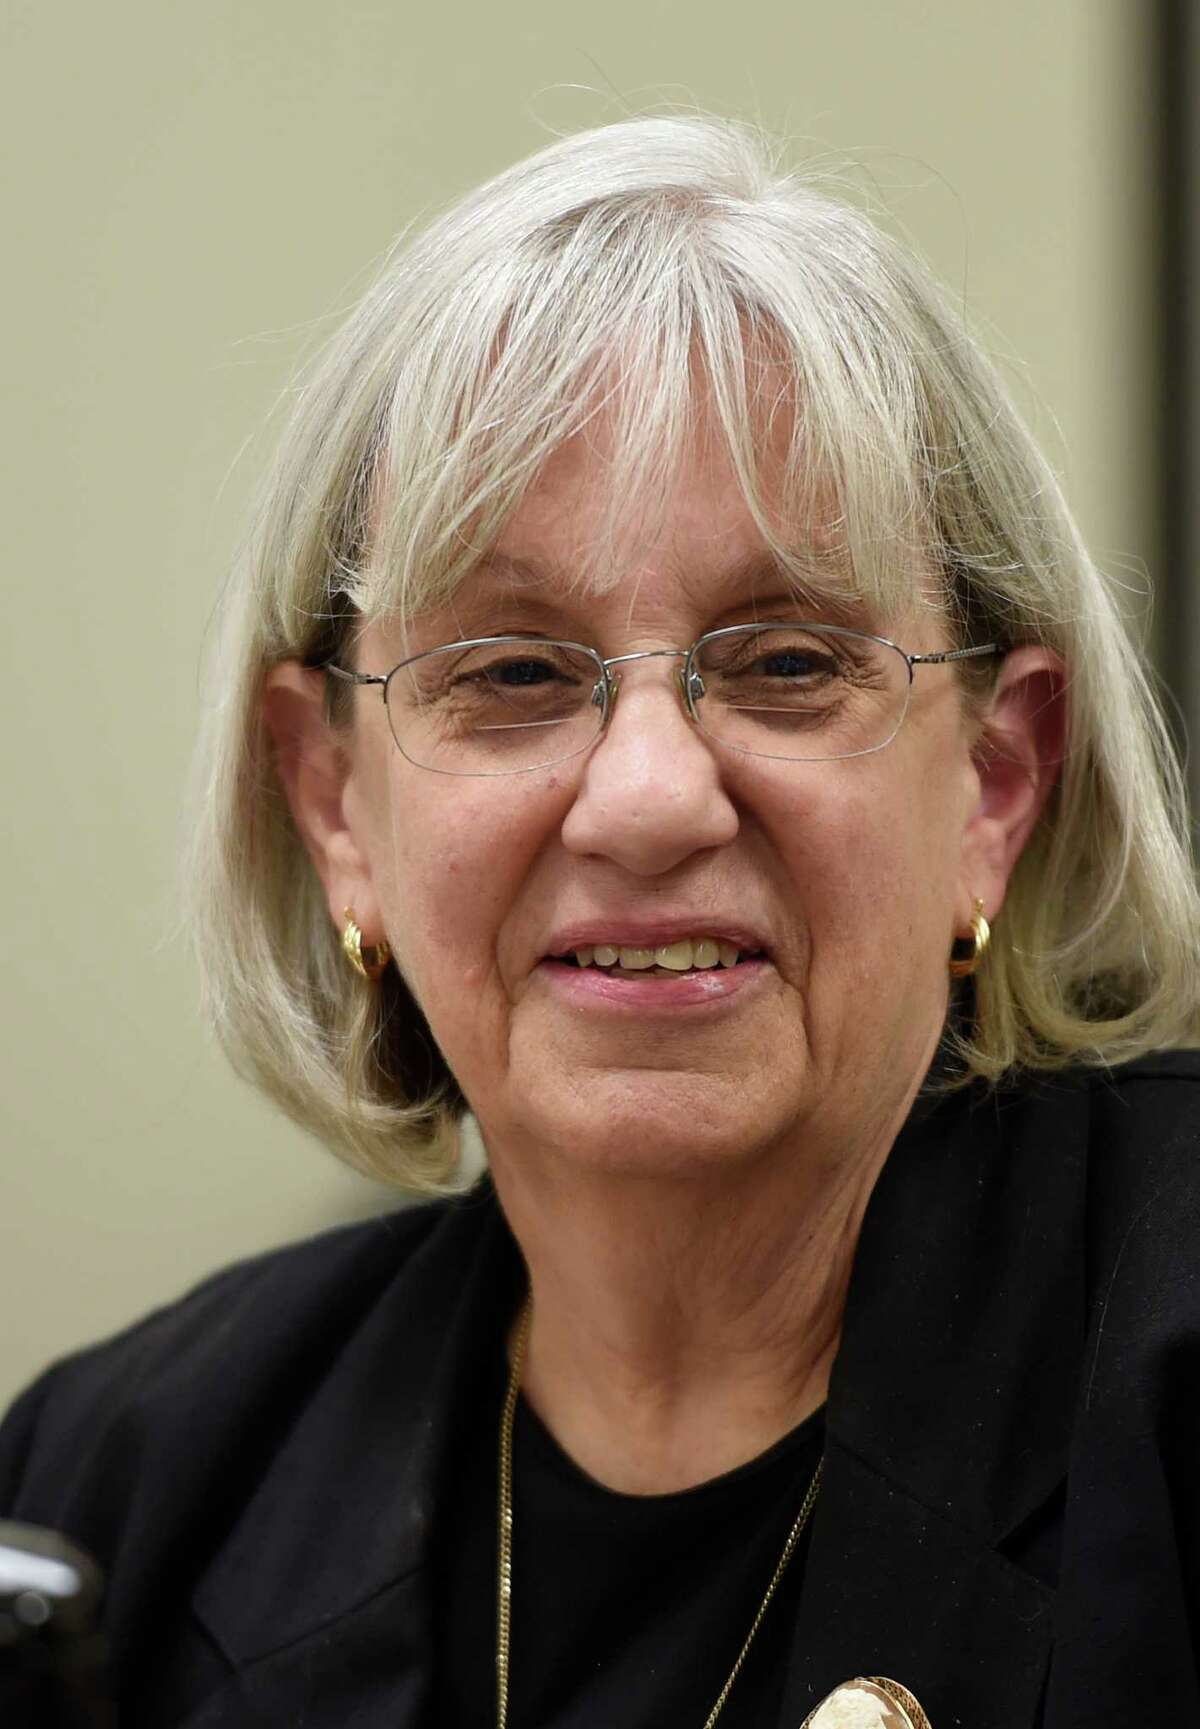 Risa Sugarman, enforcement council for the New York State Board of Elections during the board meeting today Sept. 26, 2014 at their offices in Albany, N.Y. (Skip Dickstein/Times Union)